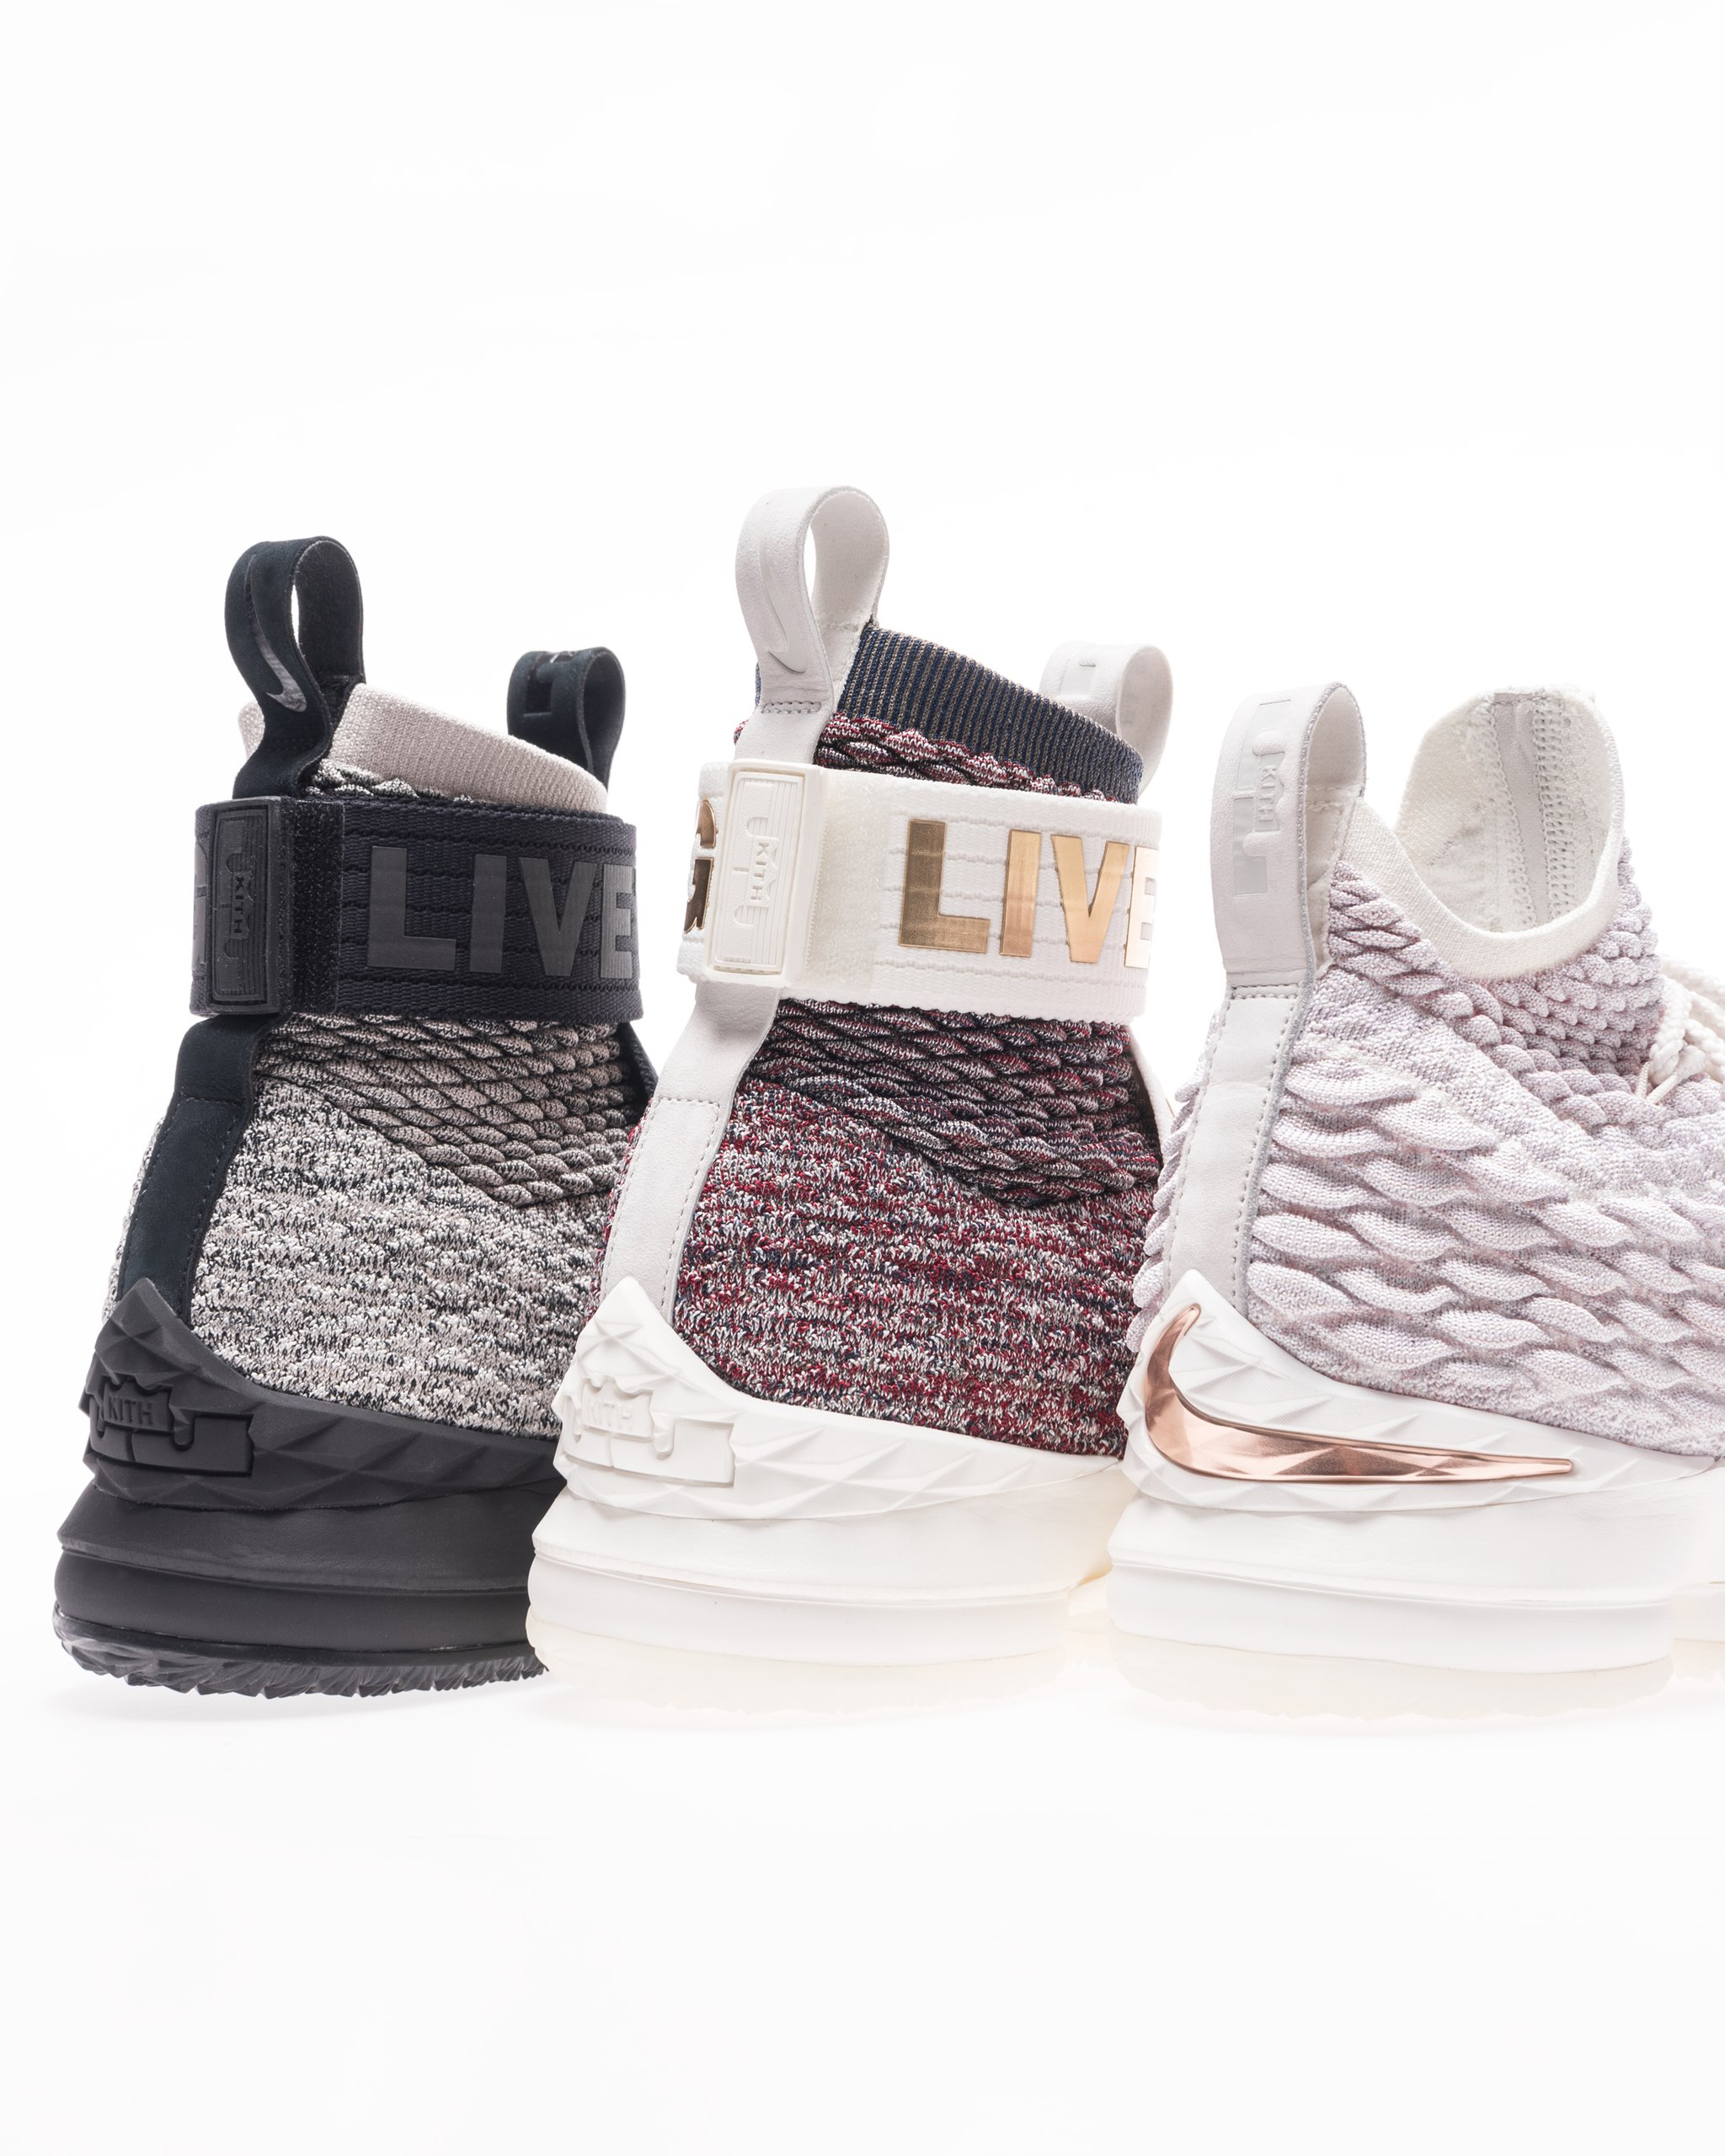 77eaedd97725 Ronnie Fieg Shares the Process Behind His LeBron James Project ...